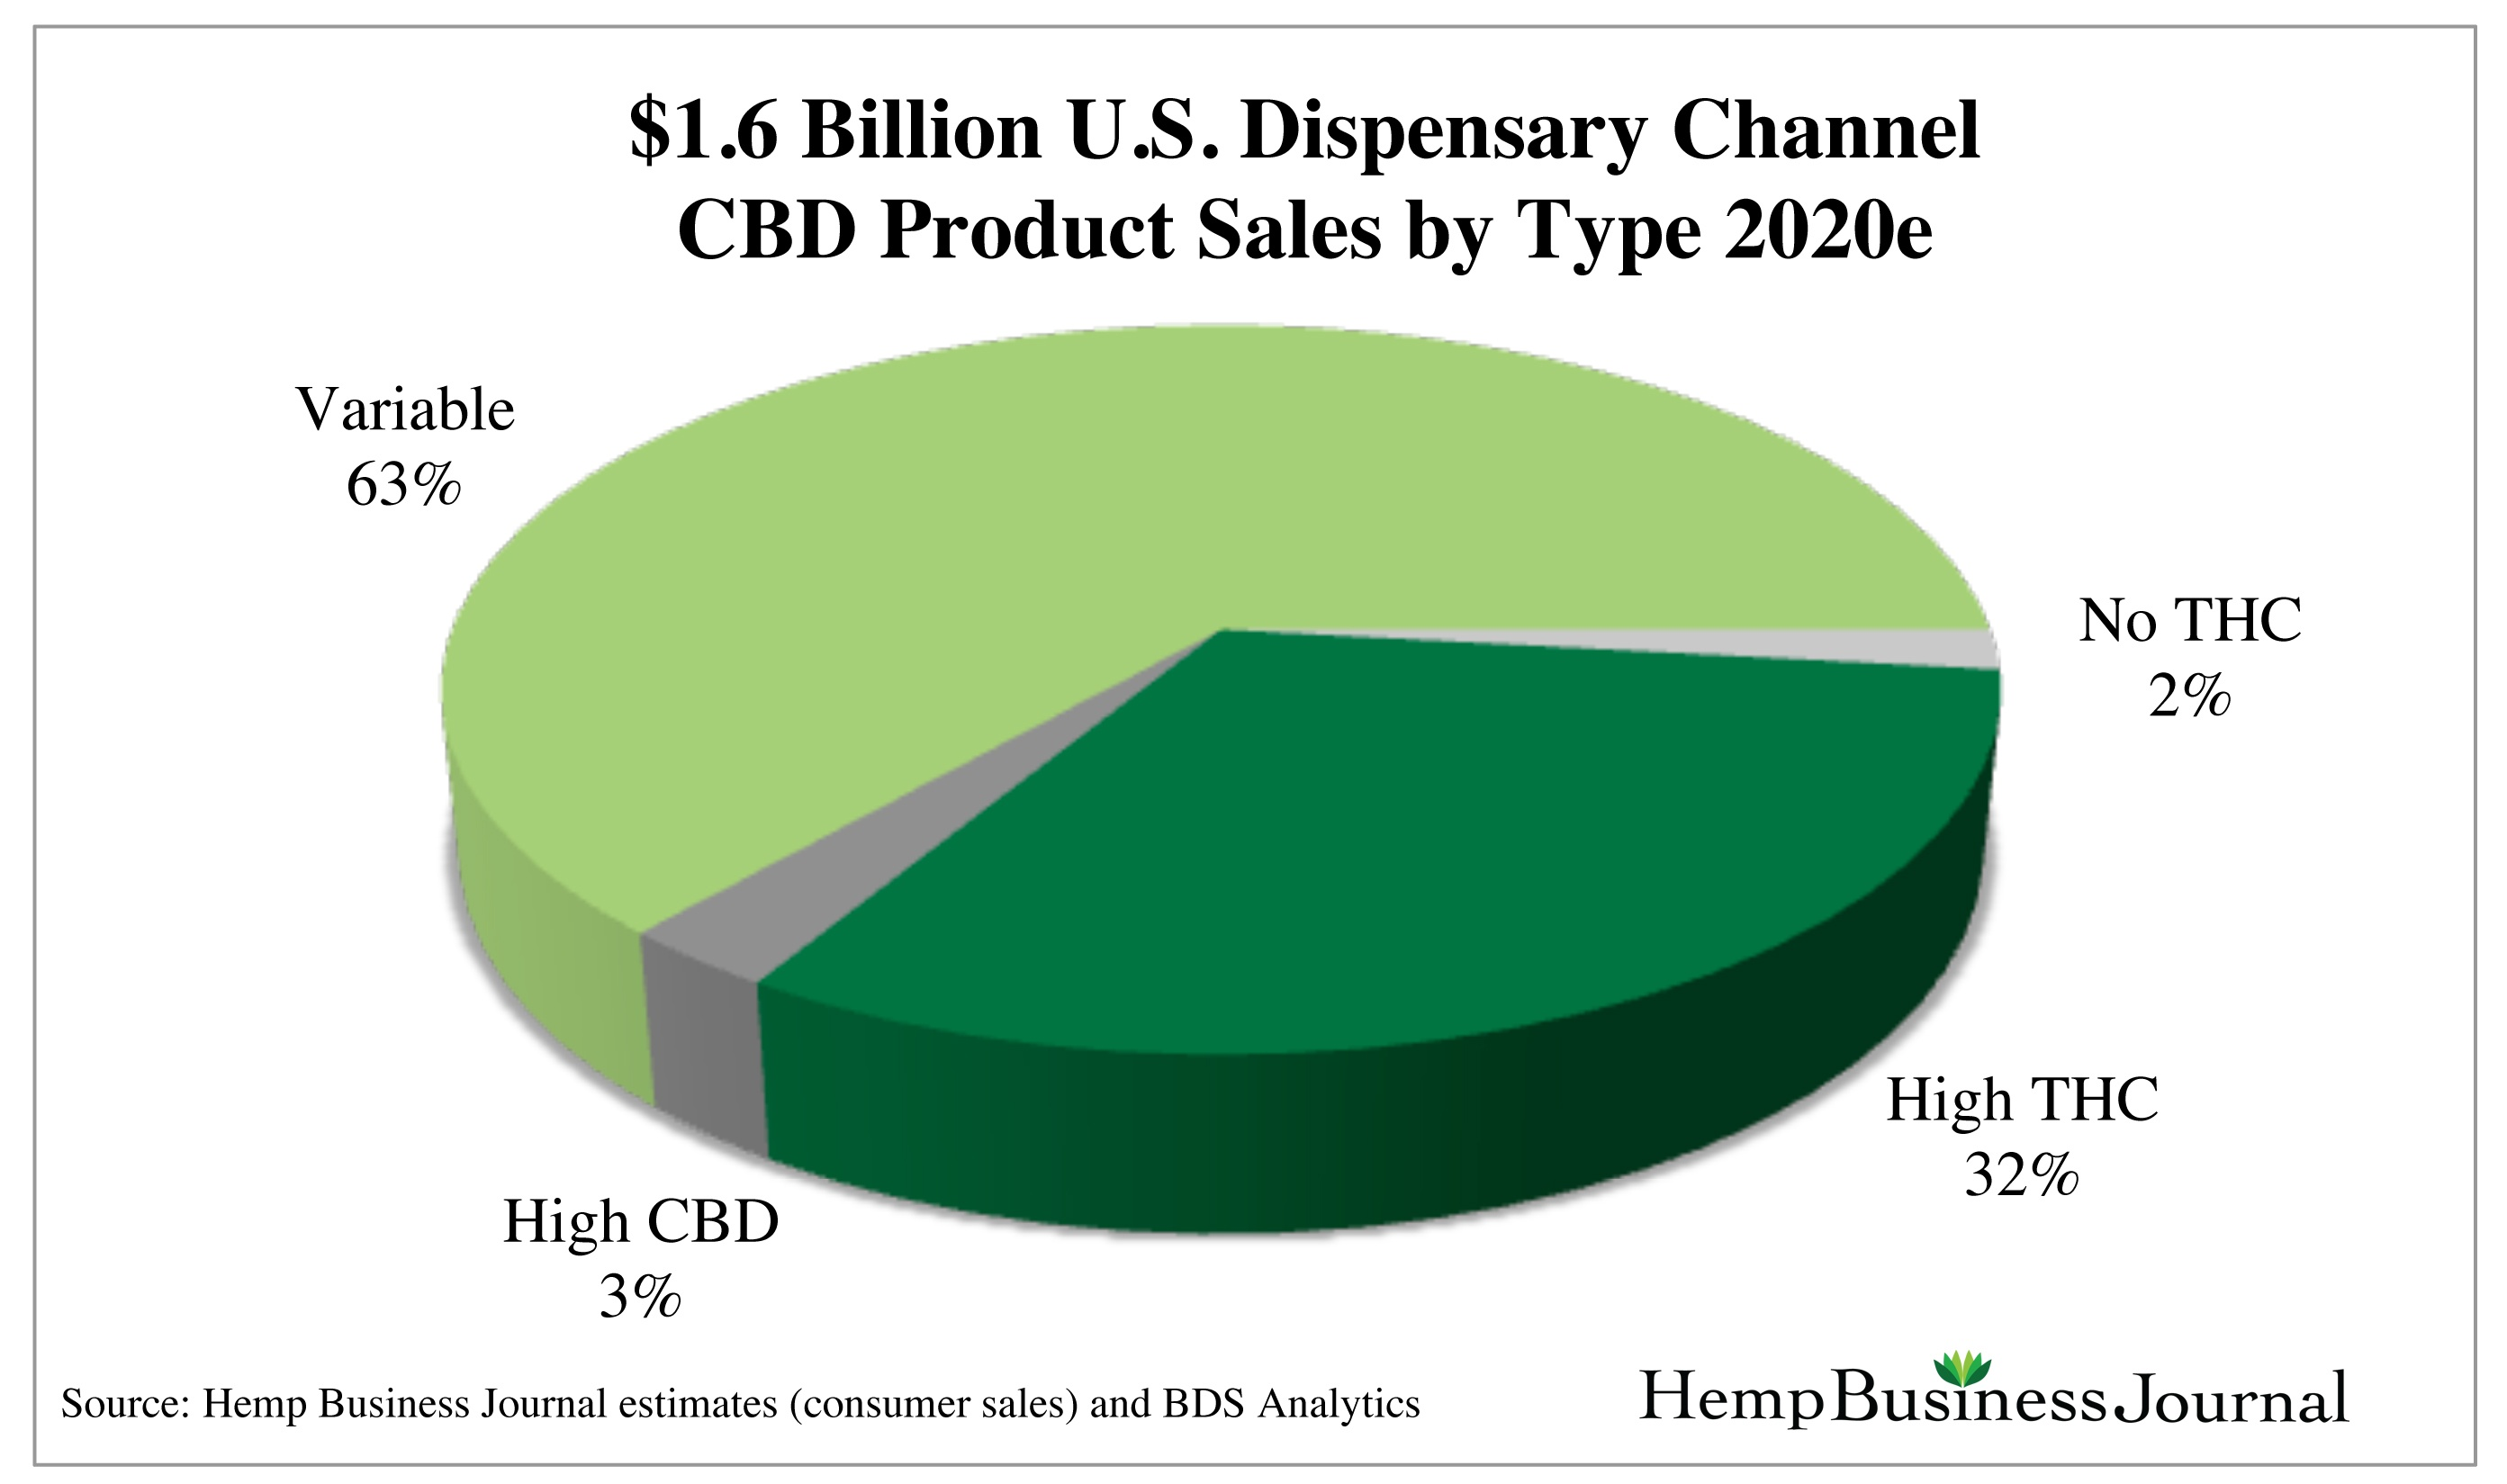 U.S-Dispensary-Channel-CBD-Sales-by-Type-2020.jpg